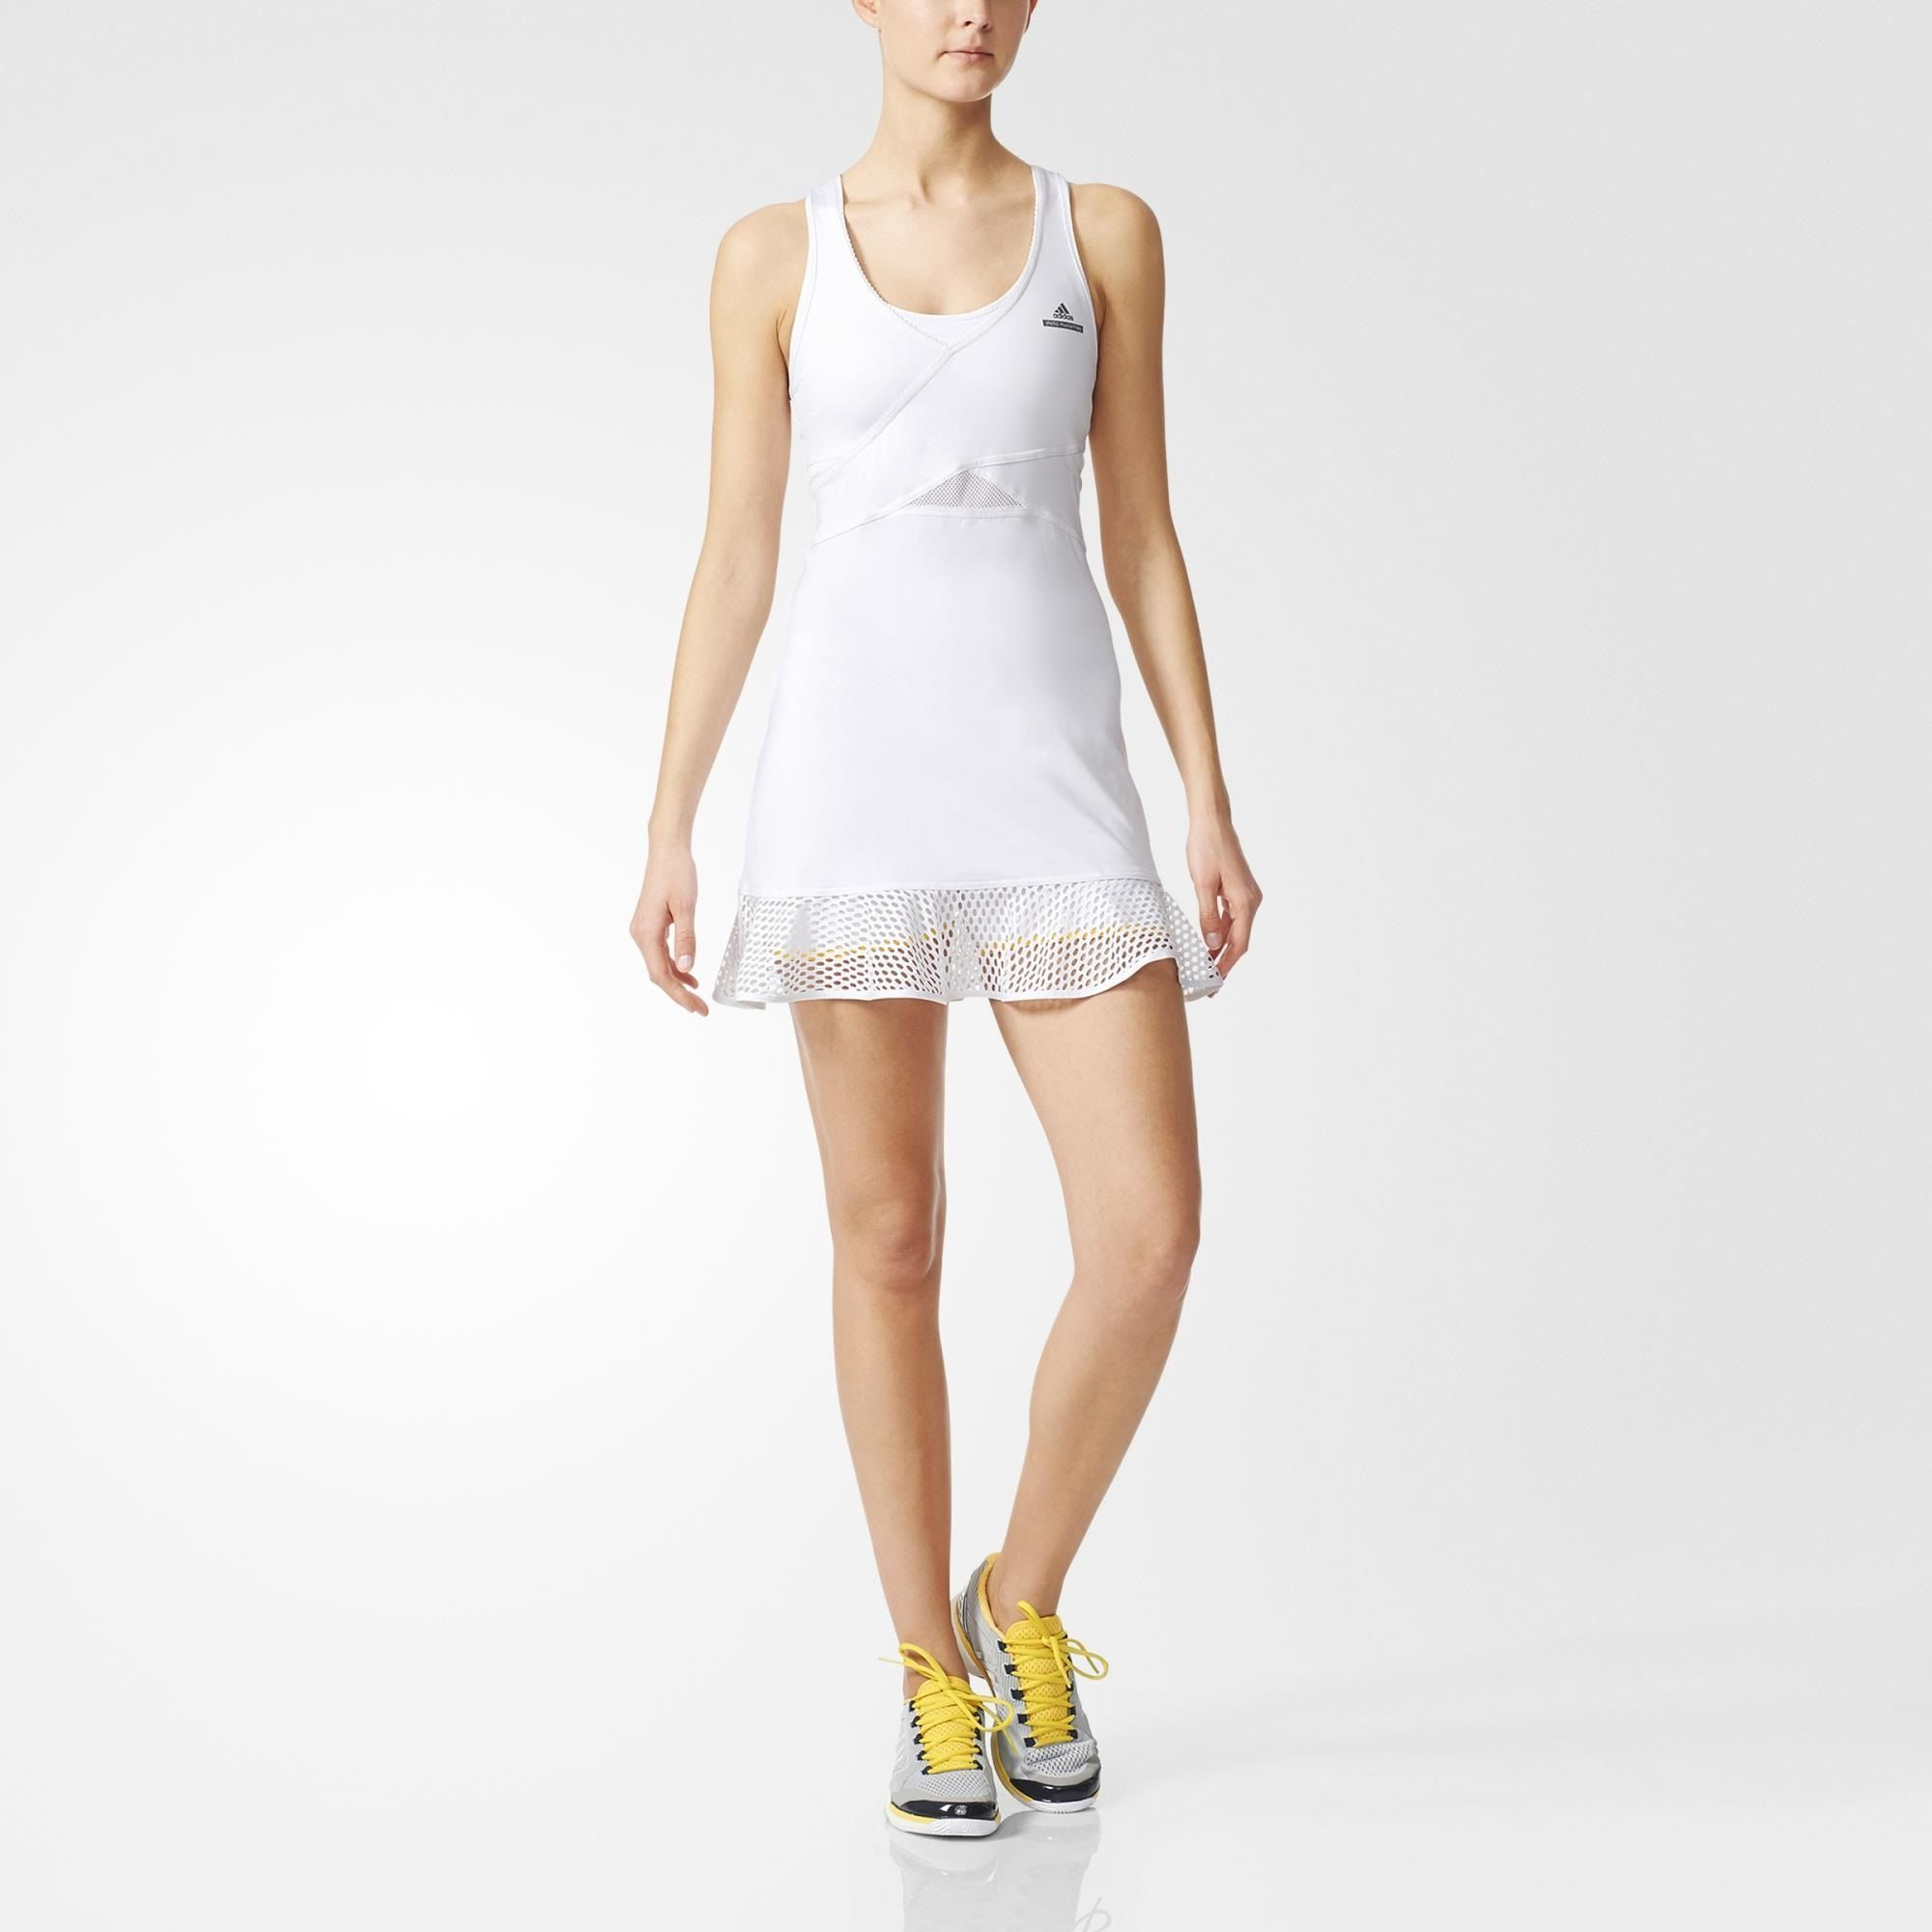 adidas STELLA DRESS WI | Outfit, Stella mccartney adidas